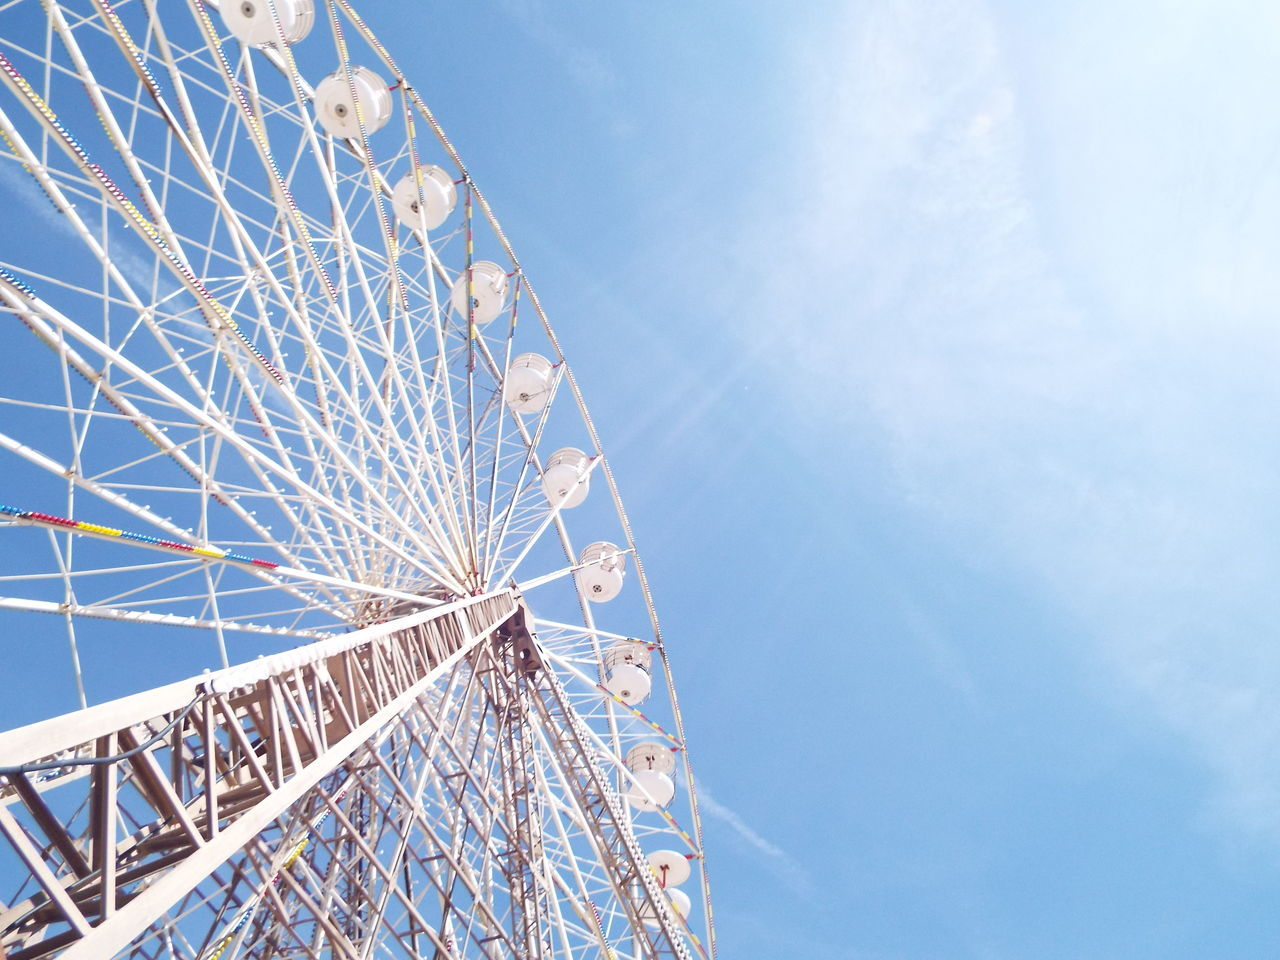 Blue Sky Blackpool Central Pier Central Pier Big Wheel Ferris Wheel Blue White The Essence Of Summer Tourist Attraction  Tourism Summertime Summer 2016 Minimalist Architecture